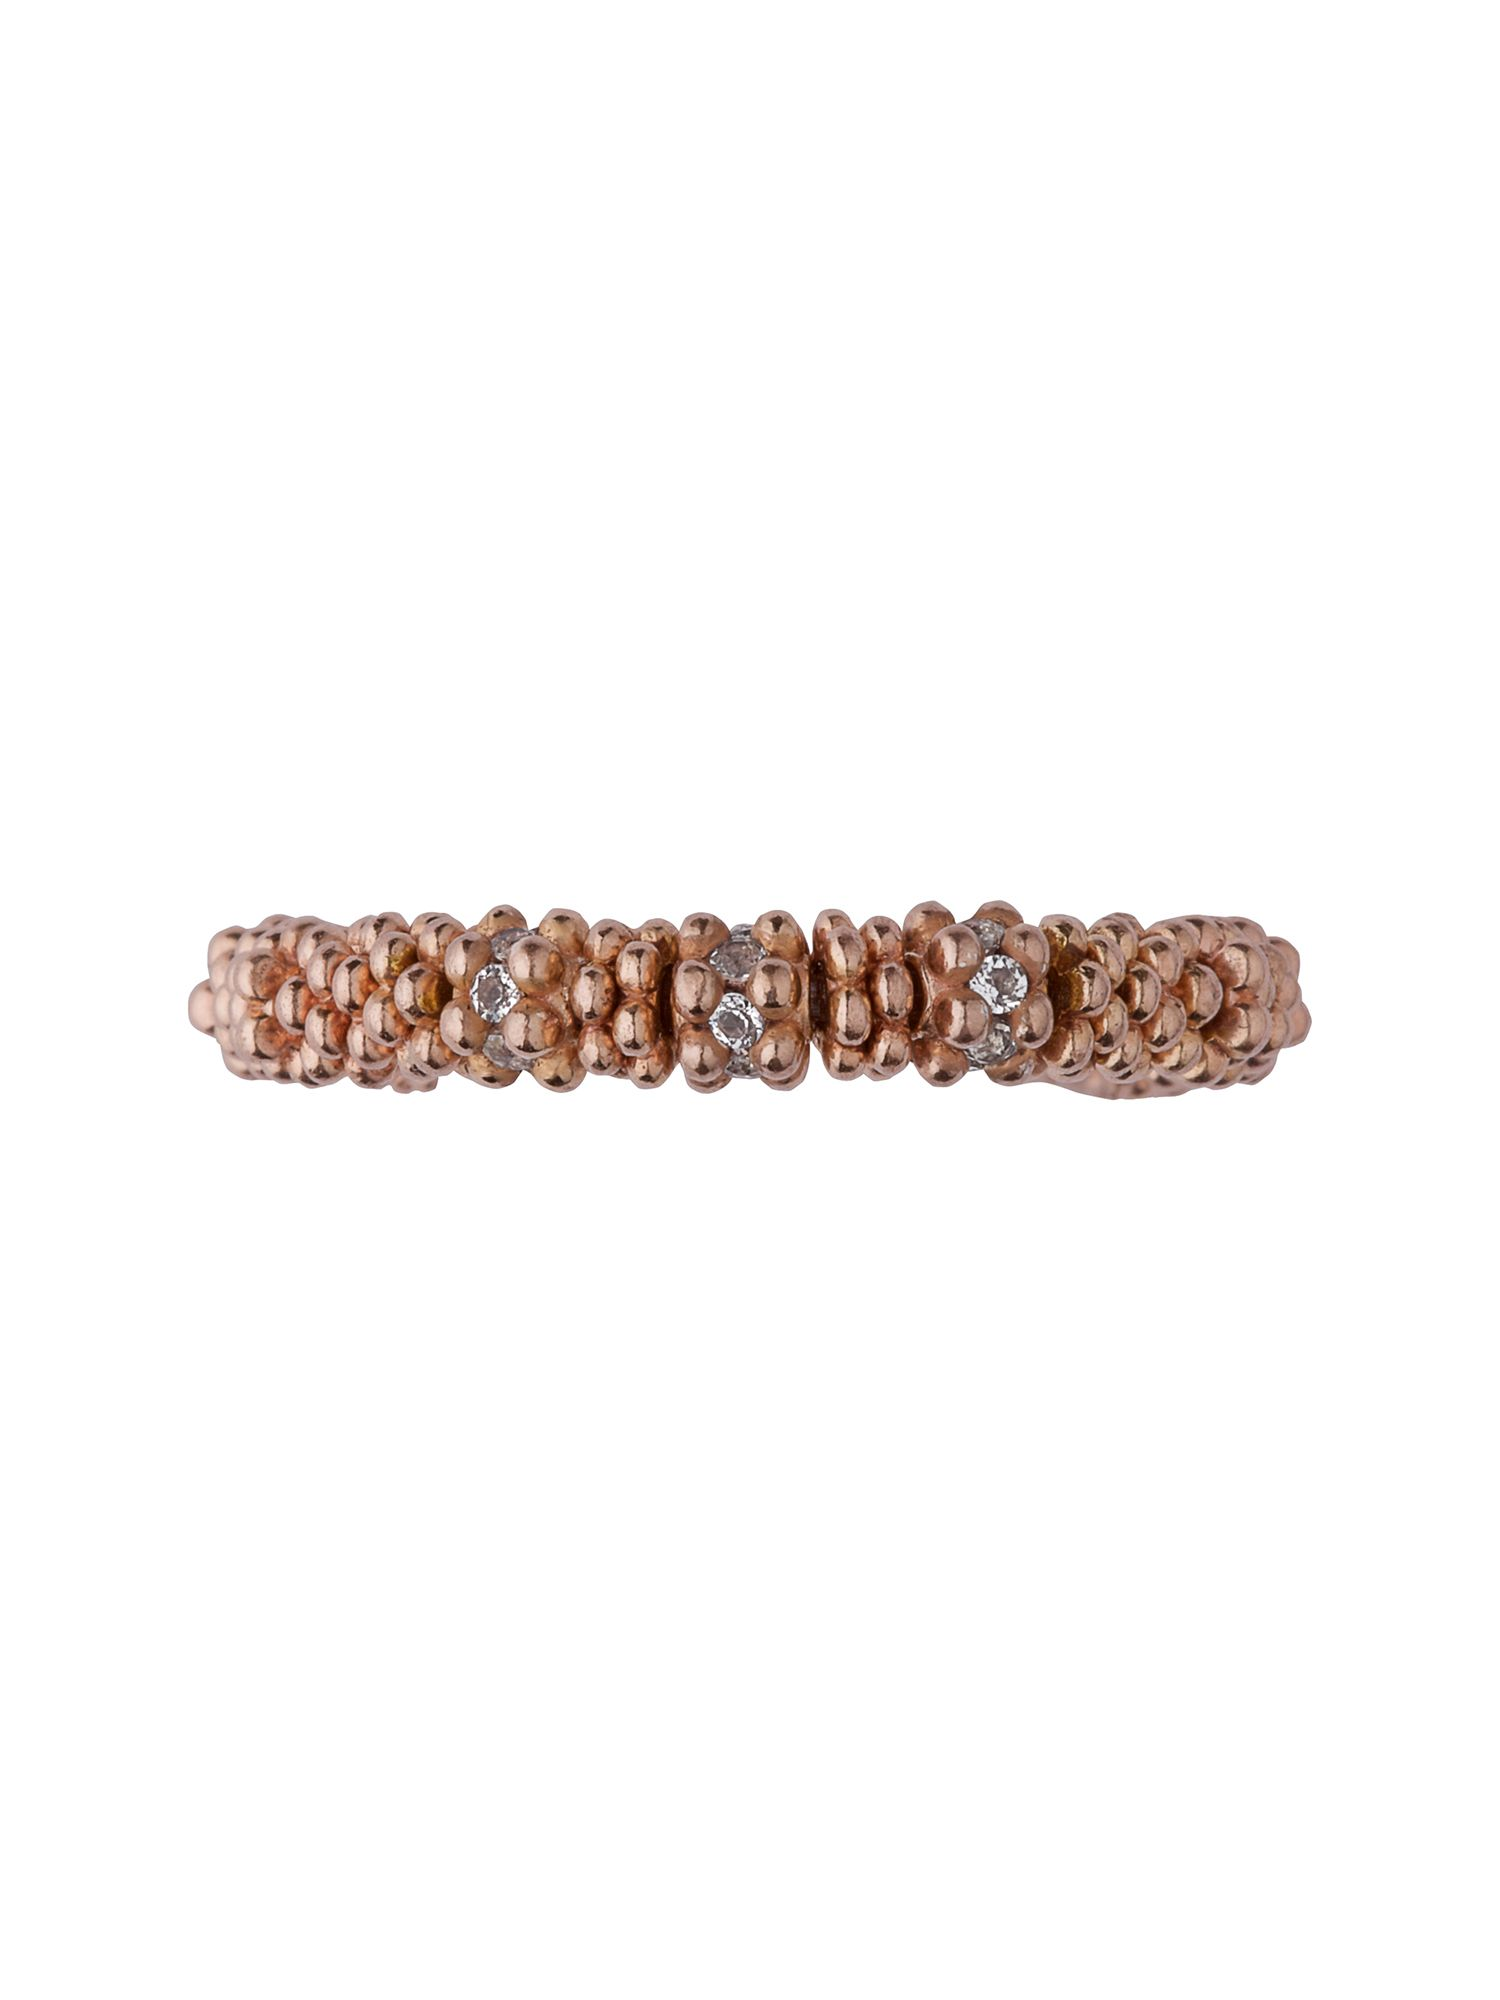 Effervescence star xs ring - rose gold & white to